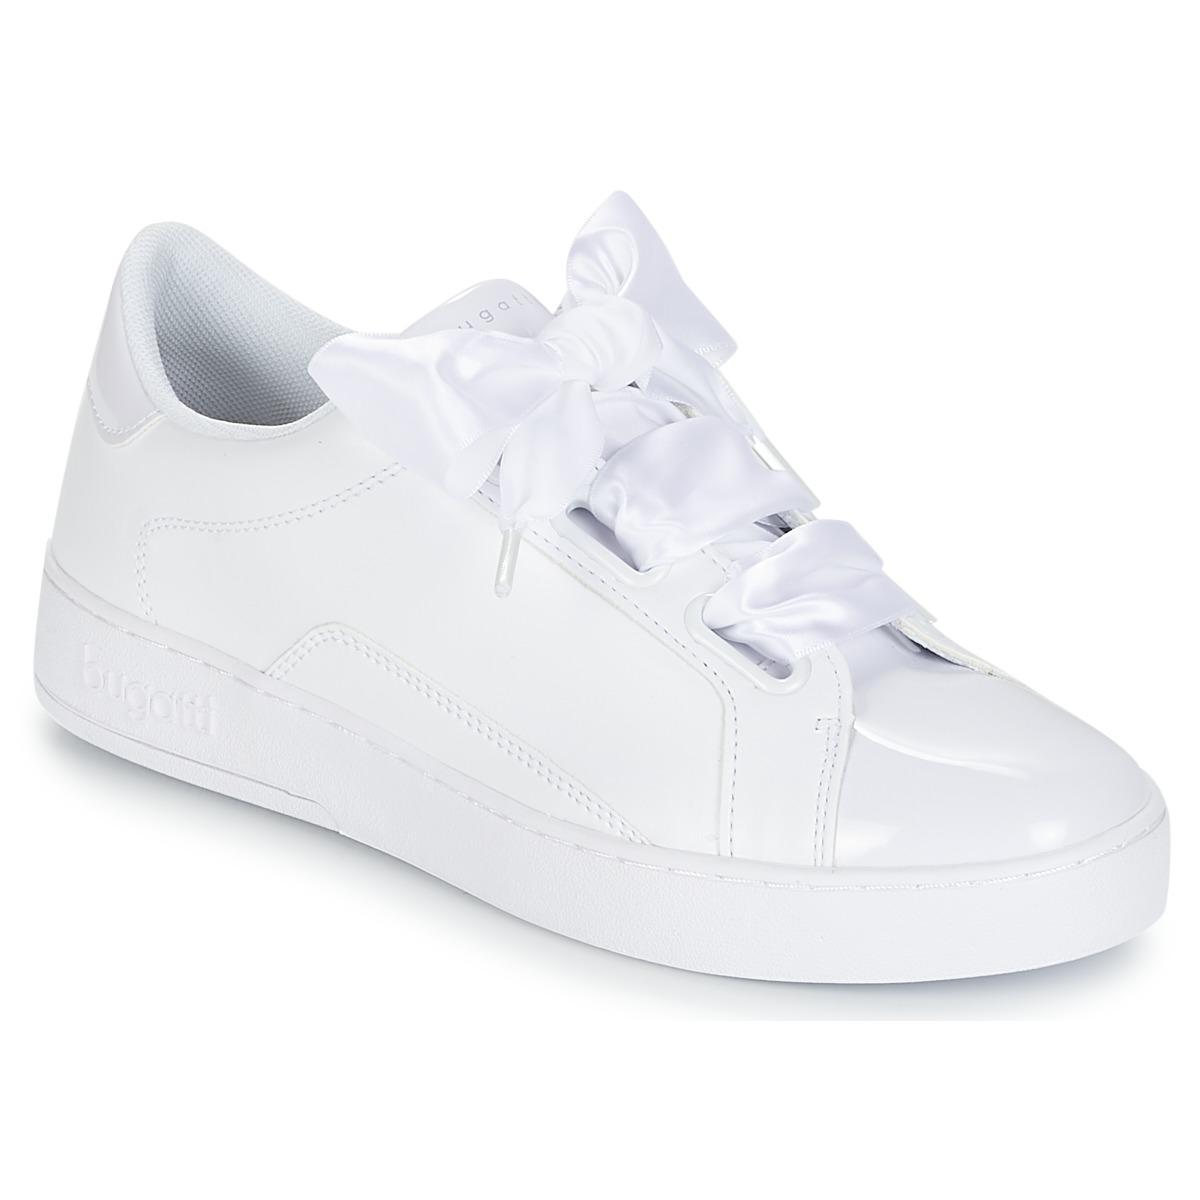 Bugatti - Women s Shoes (trainers) In White in White - Lyst dabeaaf960